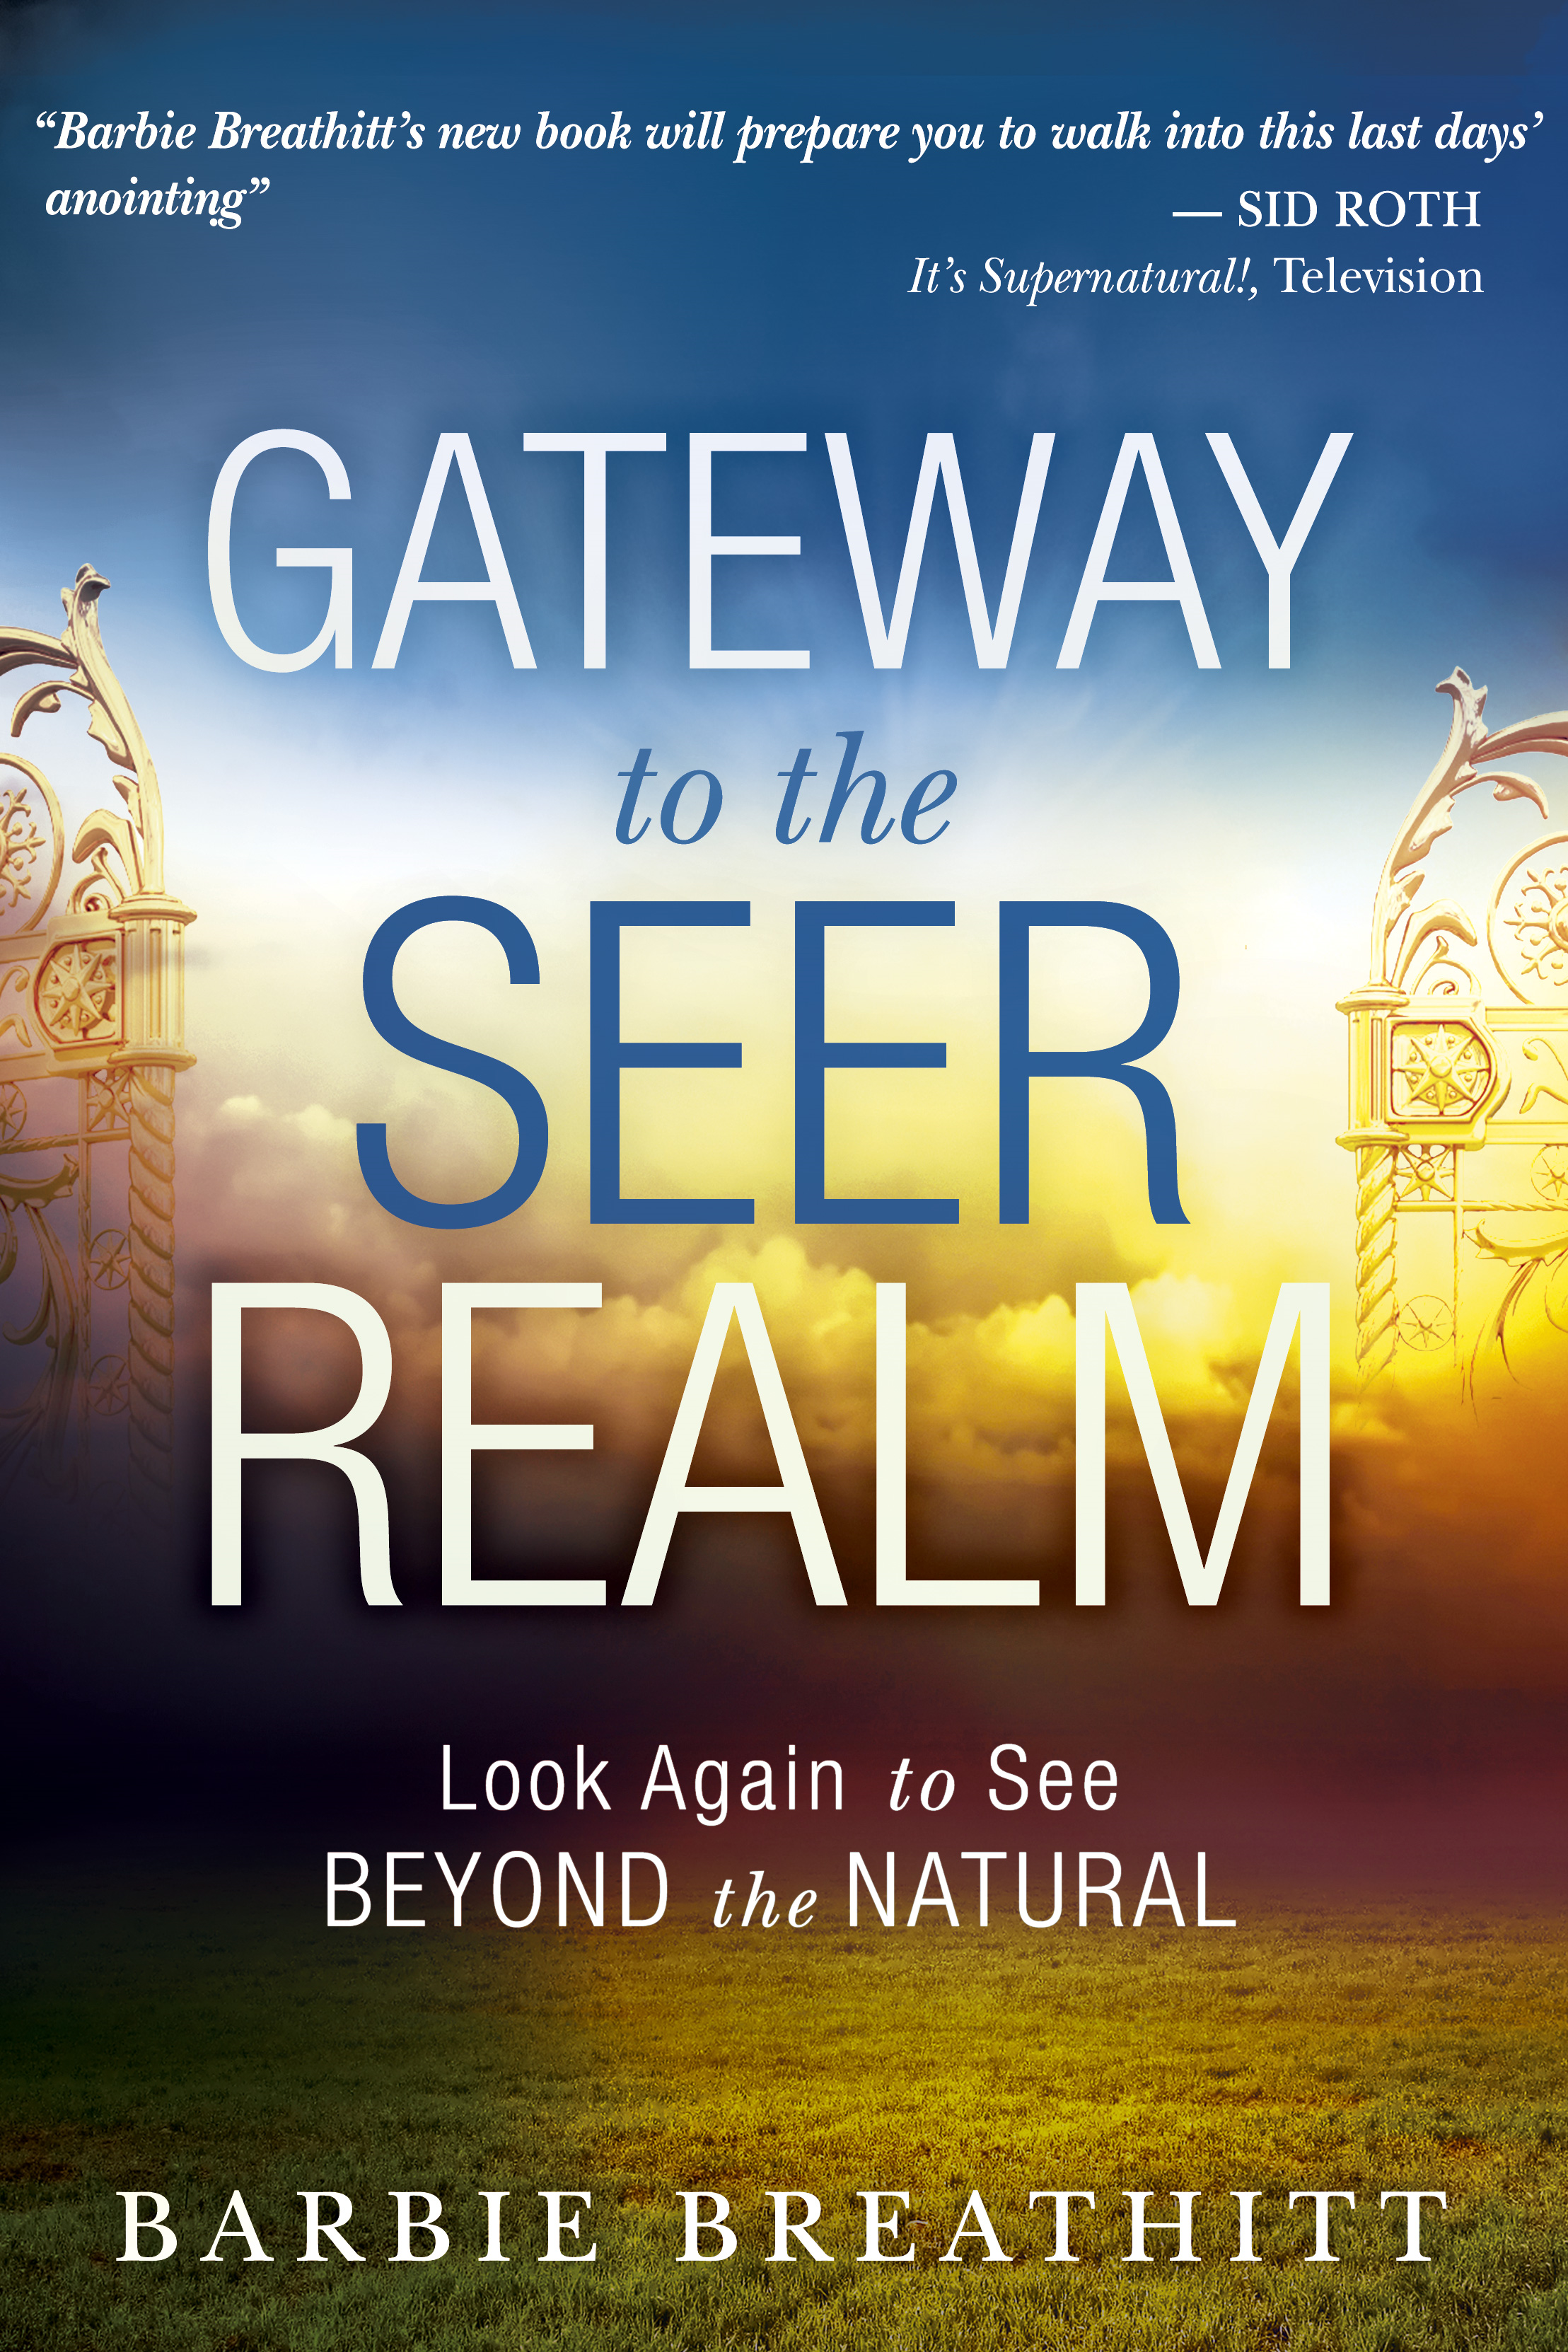 The Gateway to the Seer Realm: Look Again to See Beyond the Natural By: Barbie Breathitt